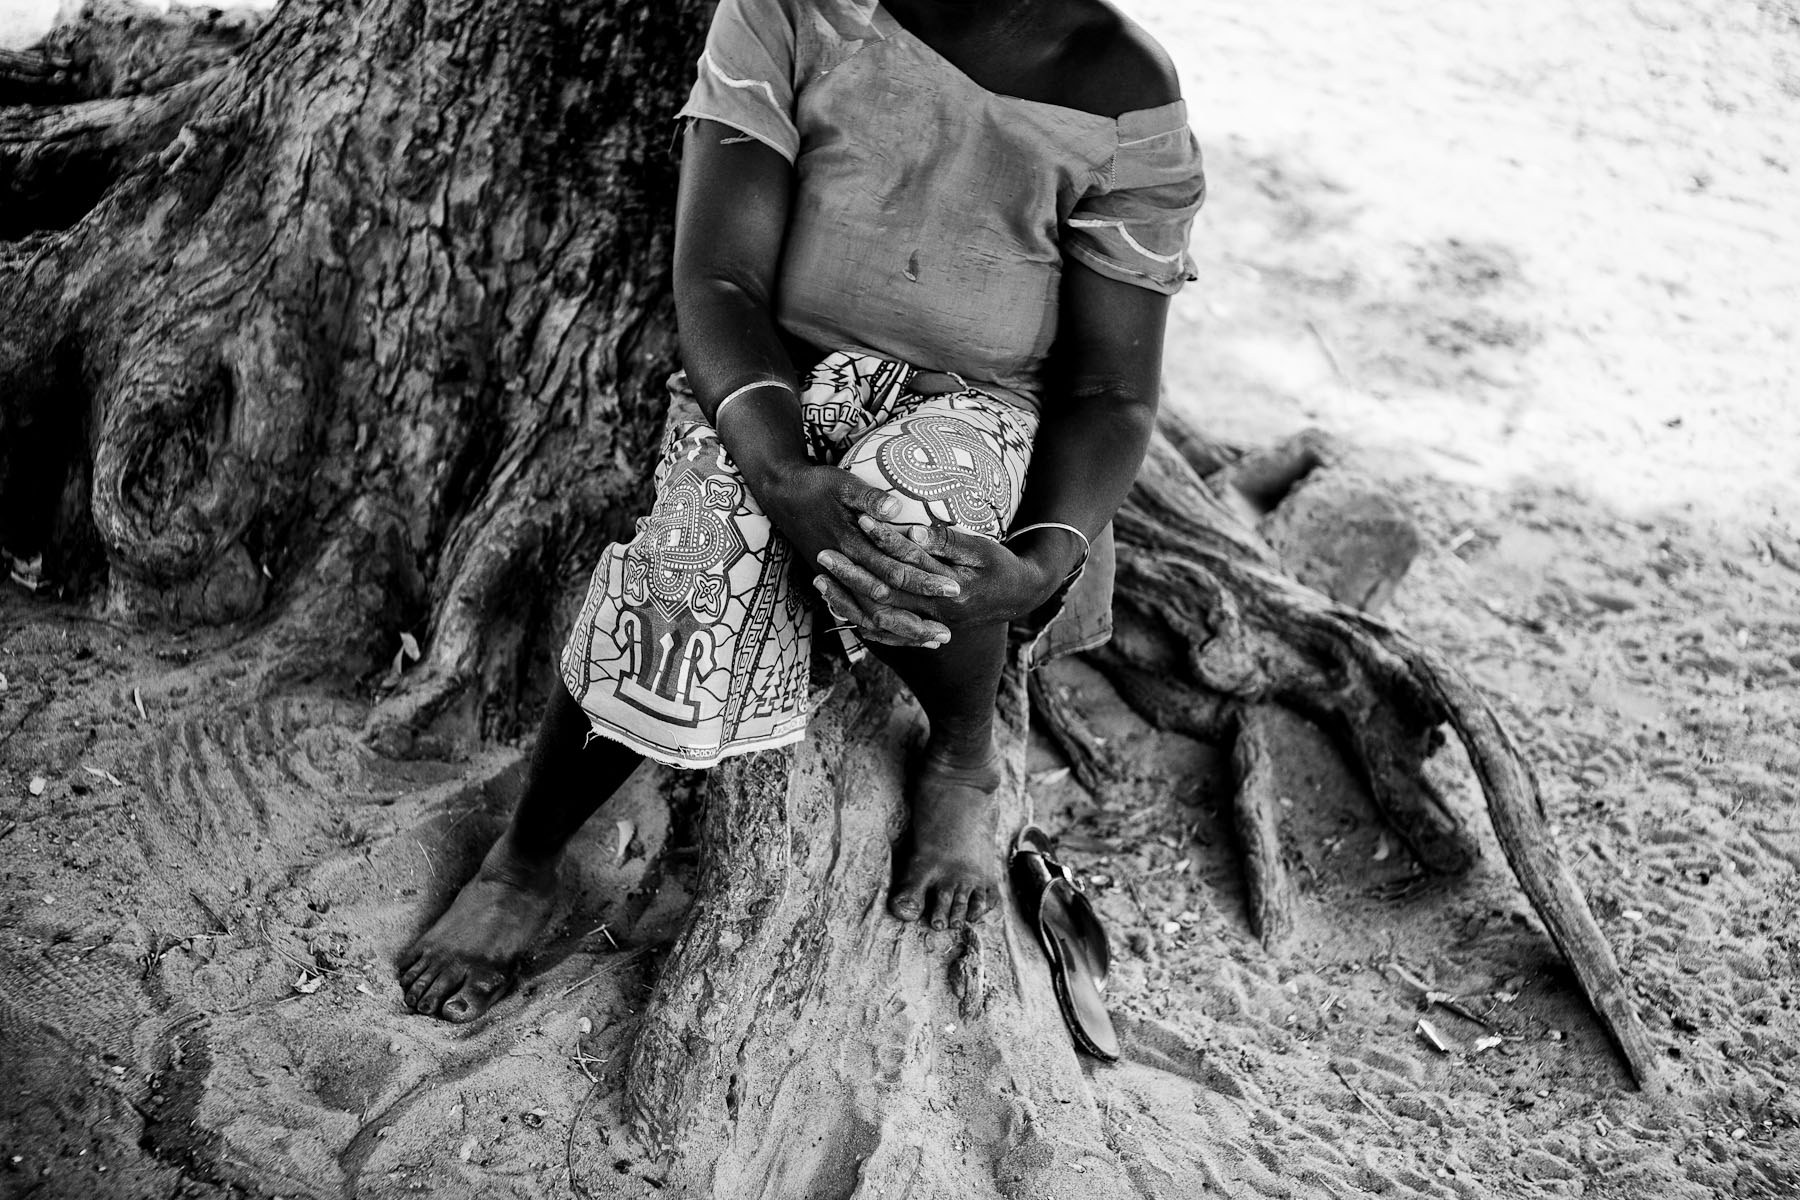 Ndaye Fall, who sold all the land to the African National Oil Corporation, sits under a tree outside her home in Kaloac, Senegal. After the death of her husband she sold all her land to the company, with a vision that she would more easily provide for her eight children if she gains additional income by being employed at the company. The company did not keep the promise. They offered her work for only two months in bad working conditions and without regular payment. Before selling her land, Ndaye was growing millet and peanuts. Now she has to buy the peanuts at the market, grilling them and selling them in order to survive. In case she would get her land back, she would not only be able to grow her own peanuts, but also lease some land to others in order to gain additional income for her and her family.